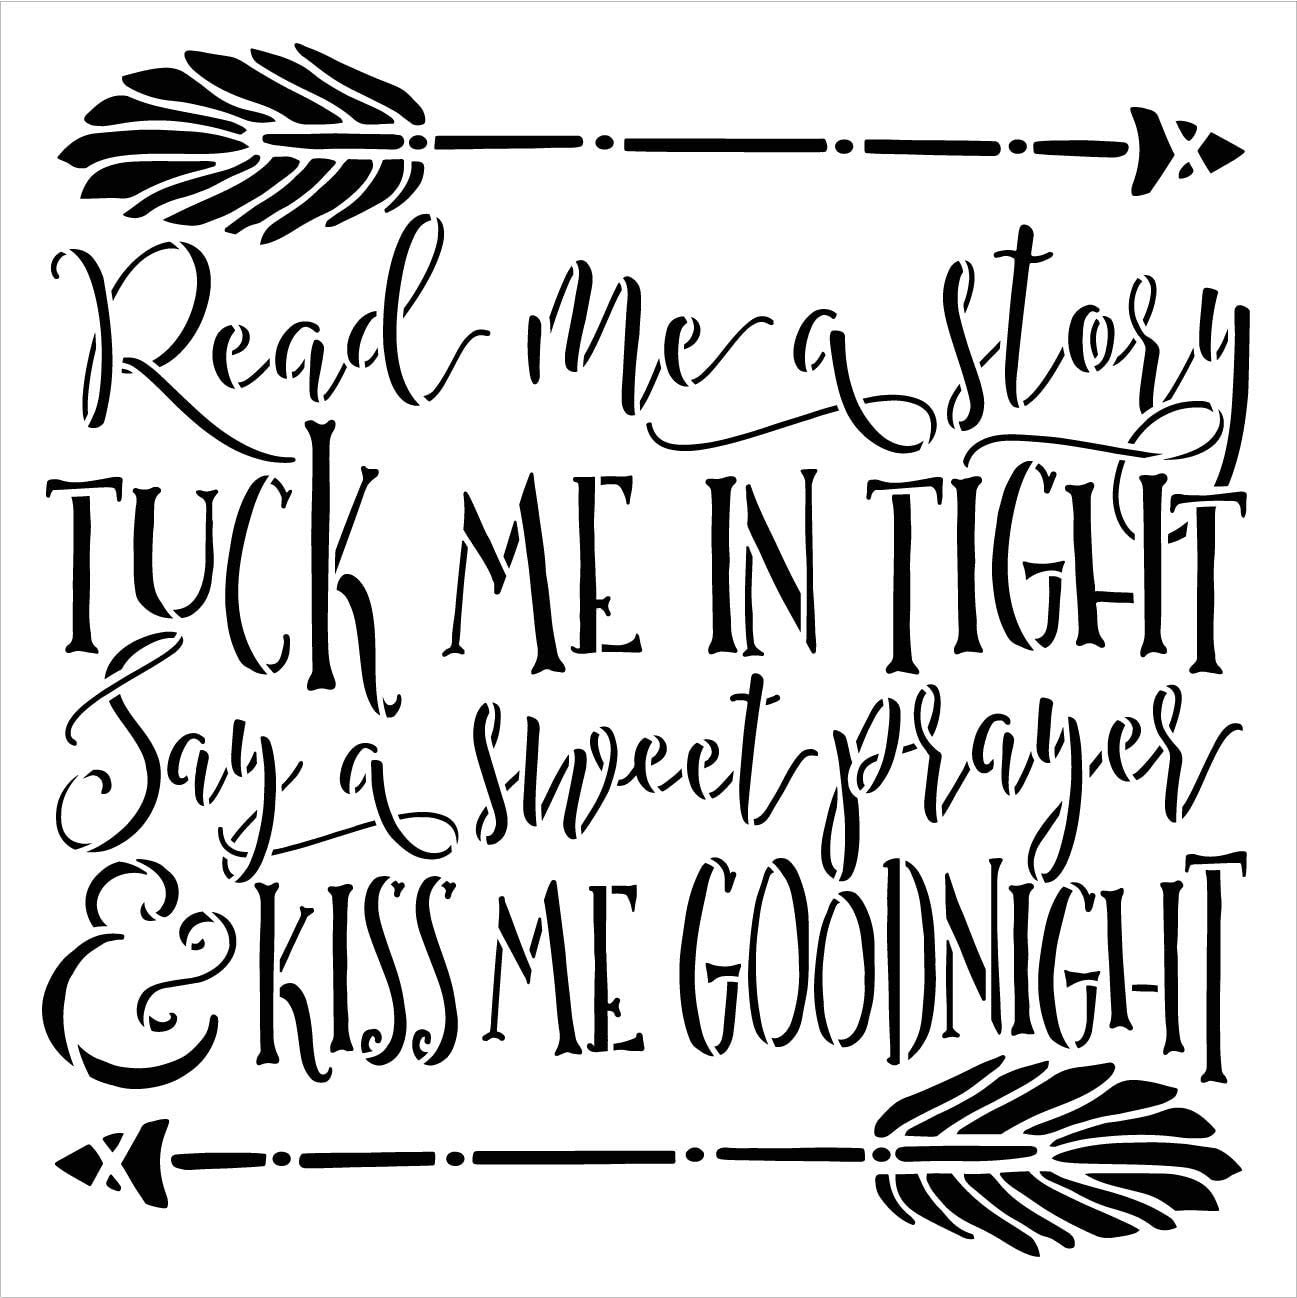 Read - Tuck in - Prayer - Kiss Goodnight Stencil by StudioR12 | DIY Arrow Home Decor Craft & Paint Wood Sign | Reusable Square Mylar Template | Cursive Script Gift Select Size (9 inches x 9 inches)